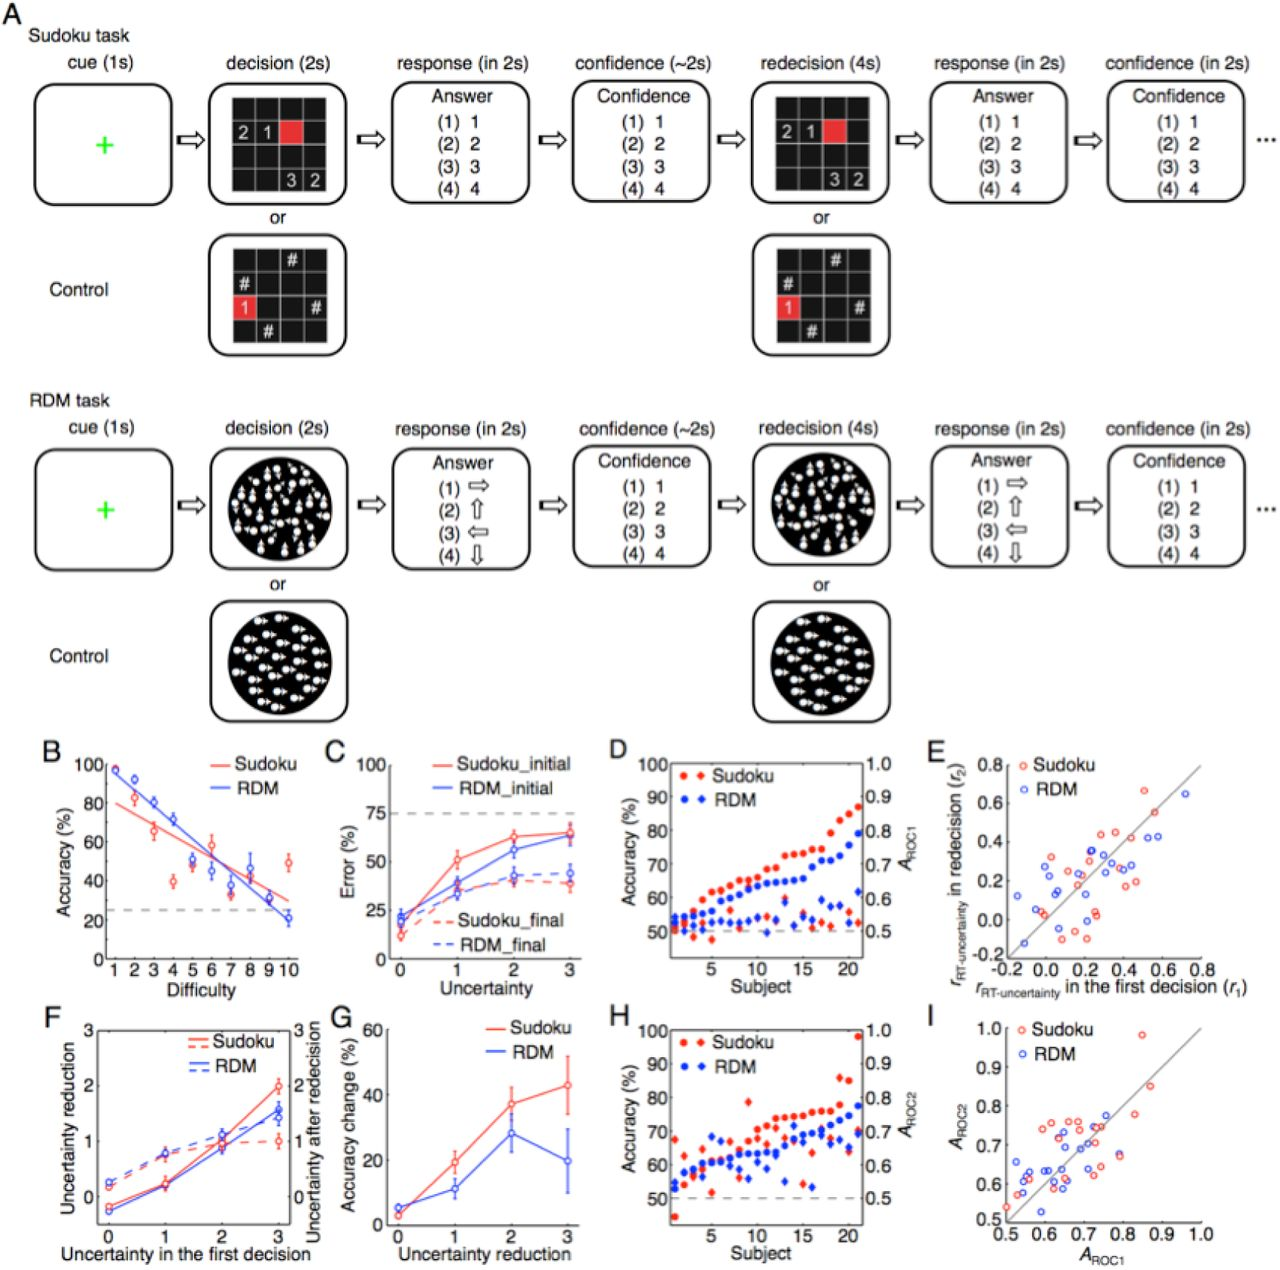 The Neural System of Metacognition Accompanying Decision-Making in